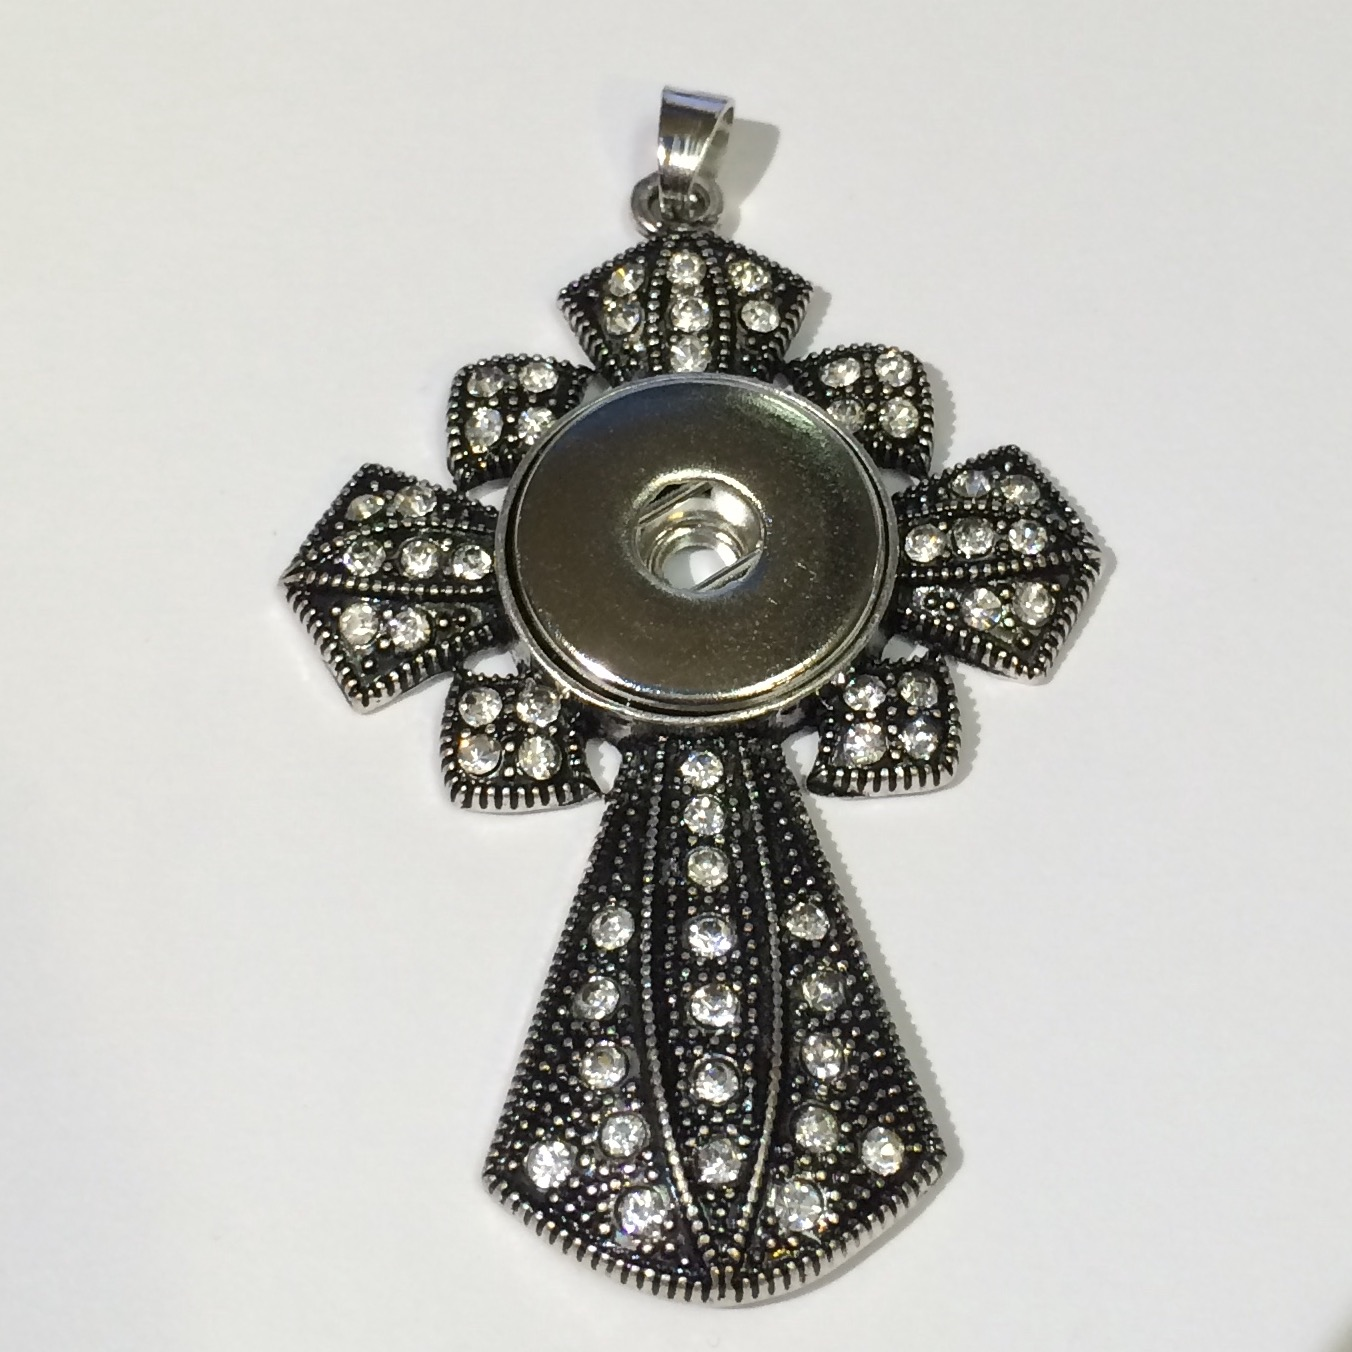 Snap Jewelry Pendant - Scalloped Cross